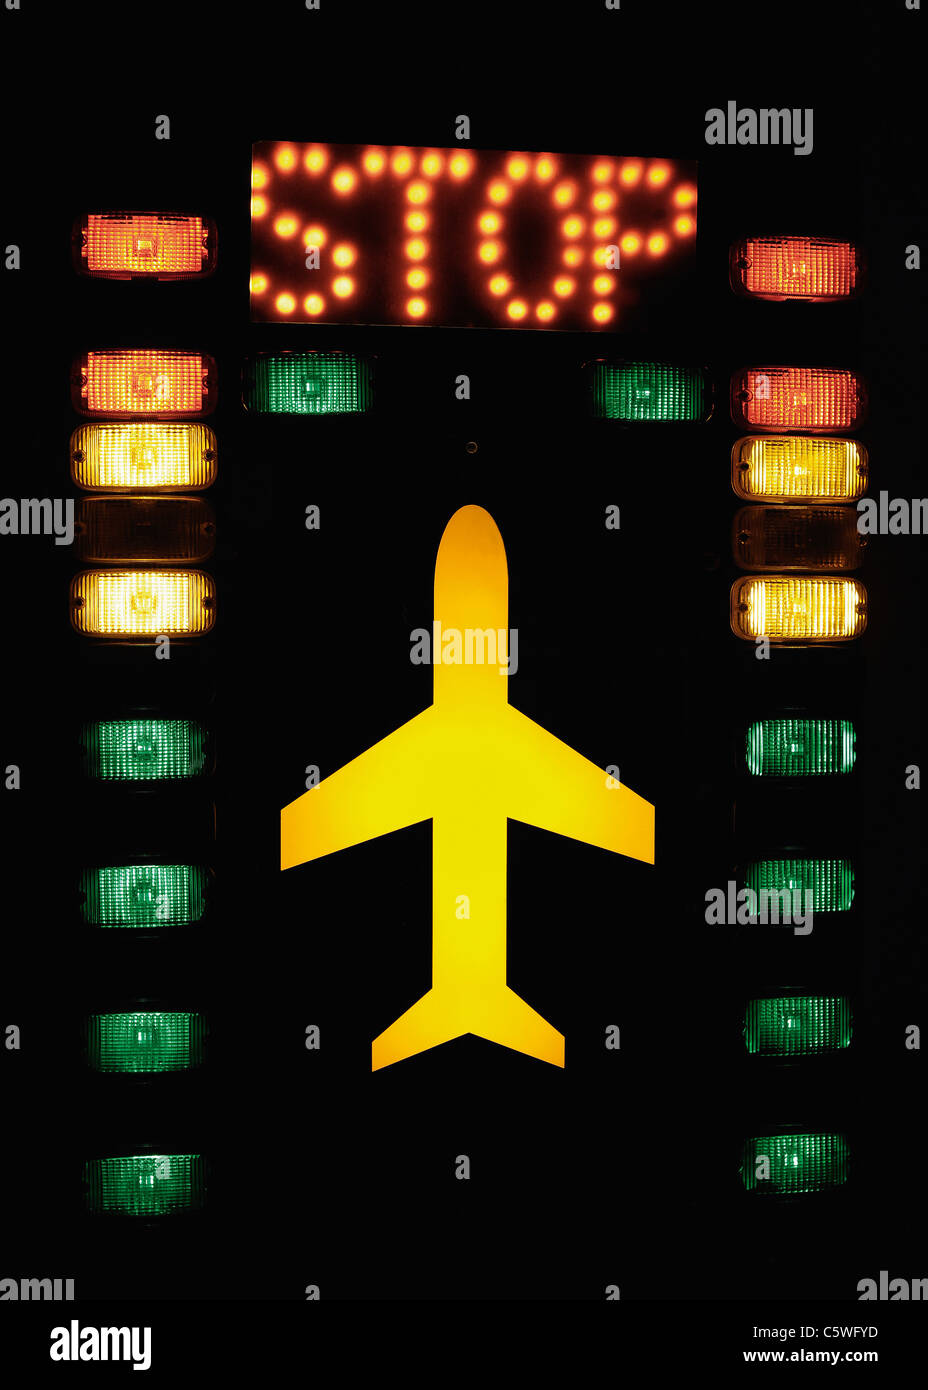 Germany, Lights with aircraft and stop sign on tower in airport - Stock Image